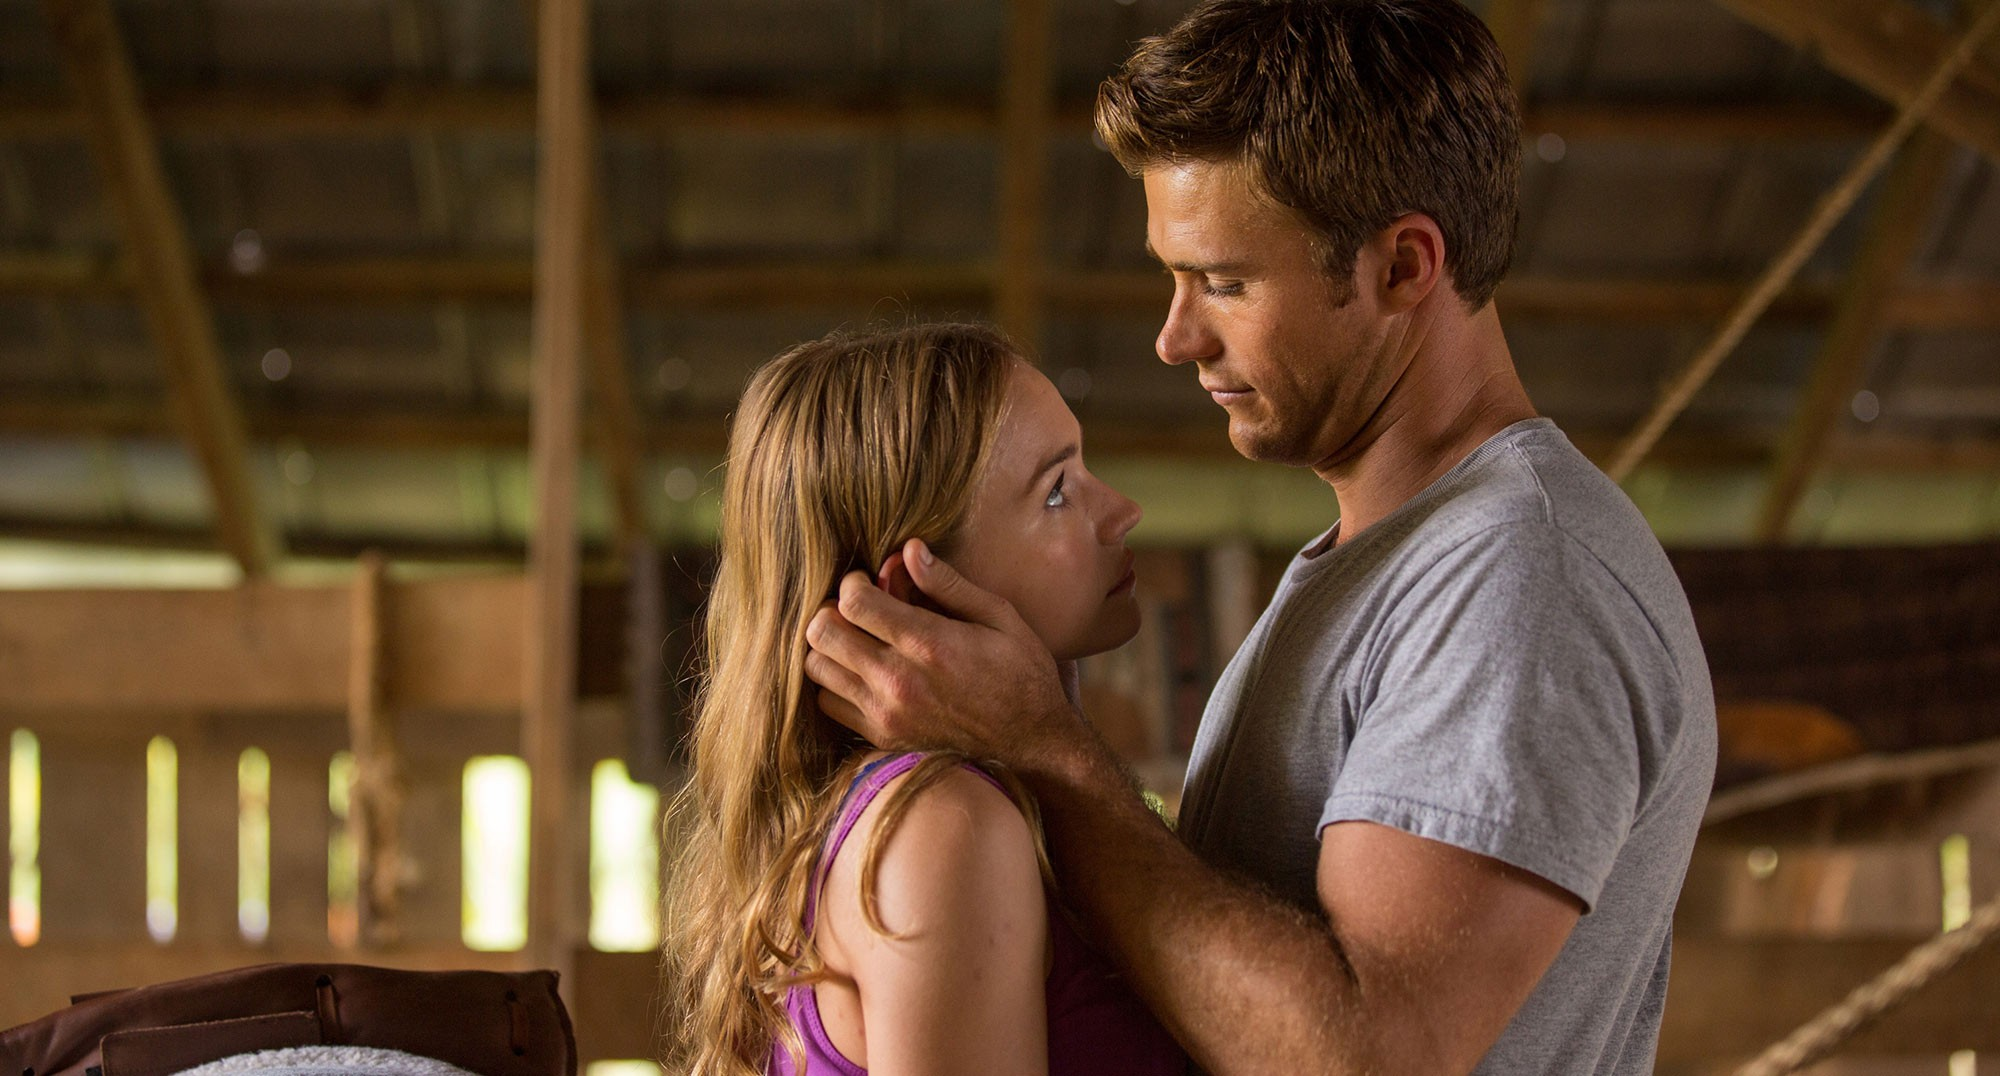 Still from The Longest Ride